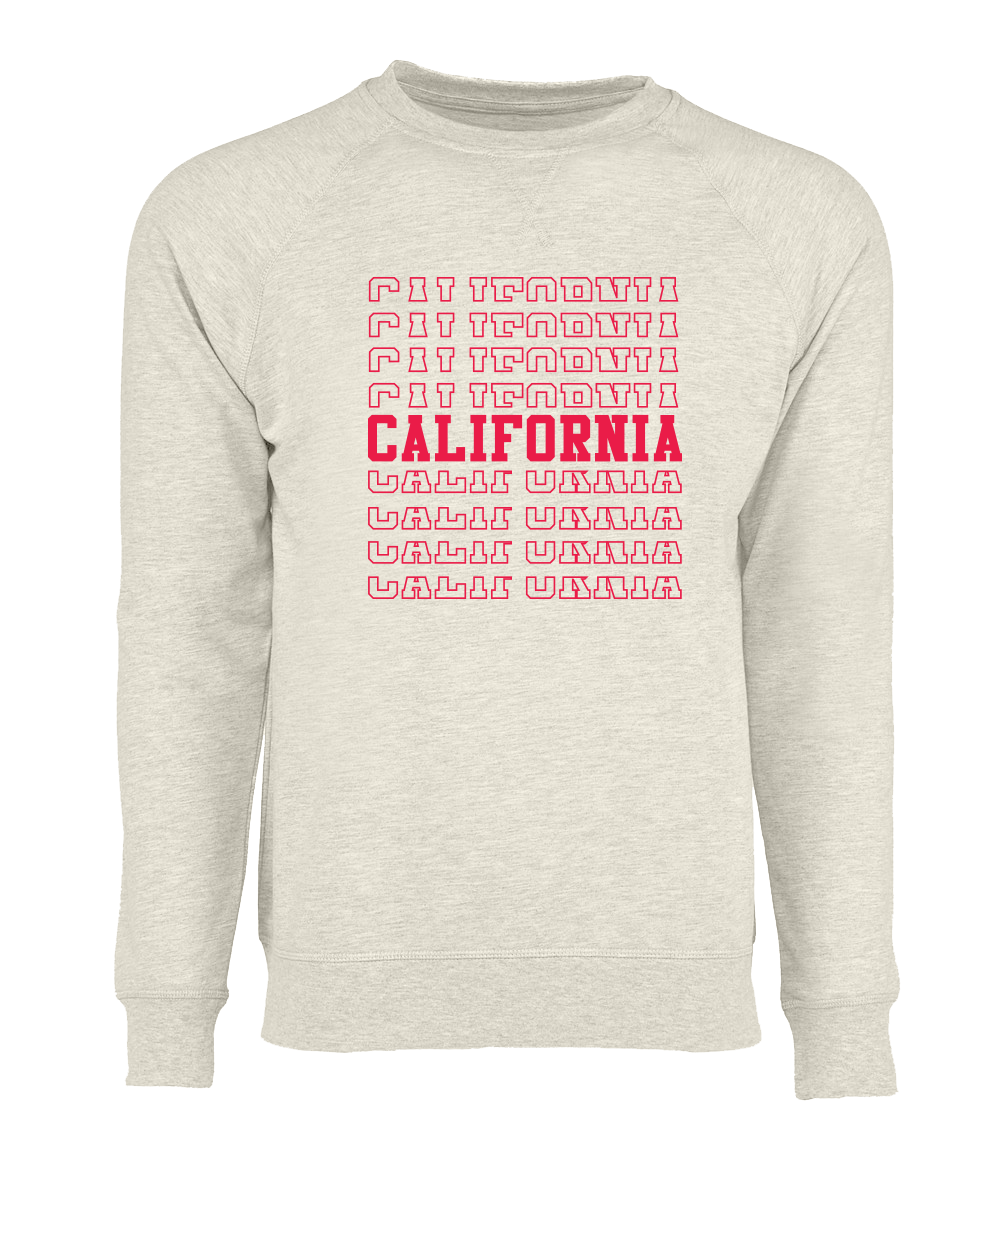 Men or Women Unisex Adult comfortable crew neck pullover sweater in heather oatmeal. Silkscreen printed red graphic text of CALIFORNIA, spin of the THANK YOU grocery bags.  Design is by local artist in San Diego, California. Sold by San Diego Trading Company.